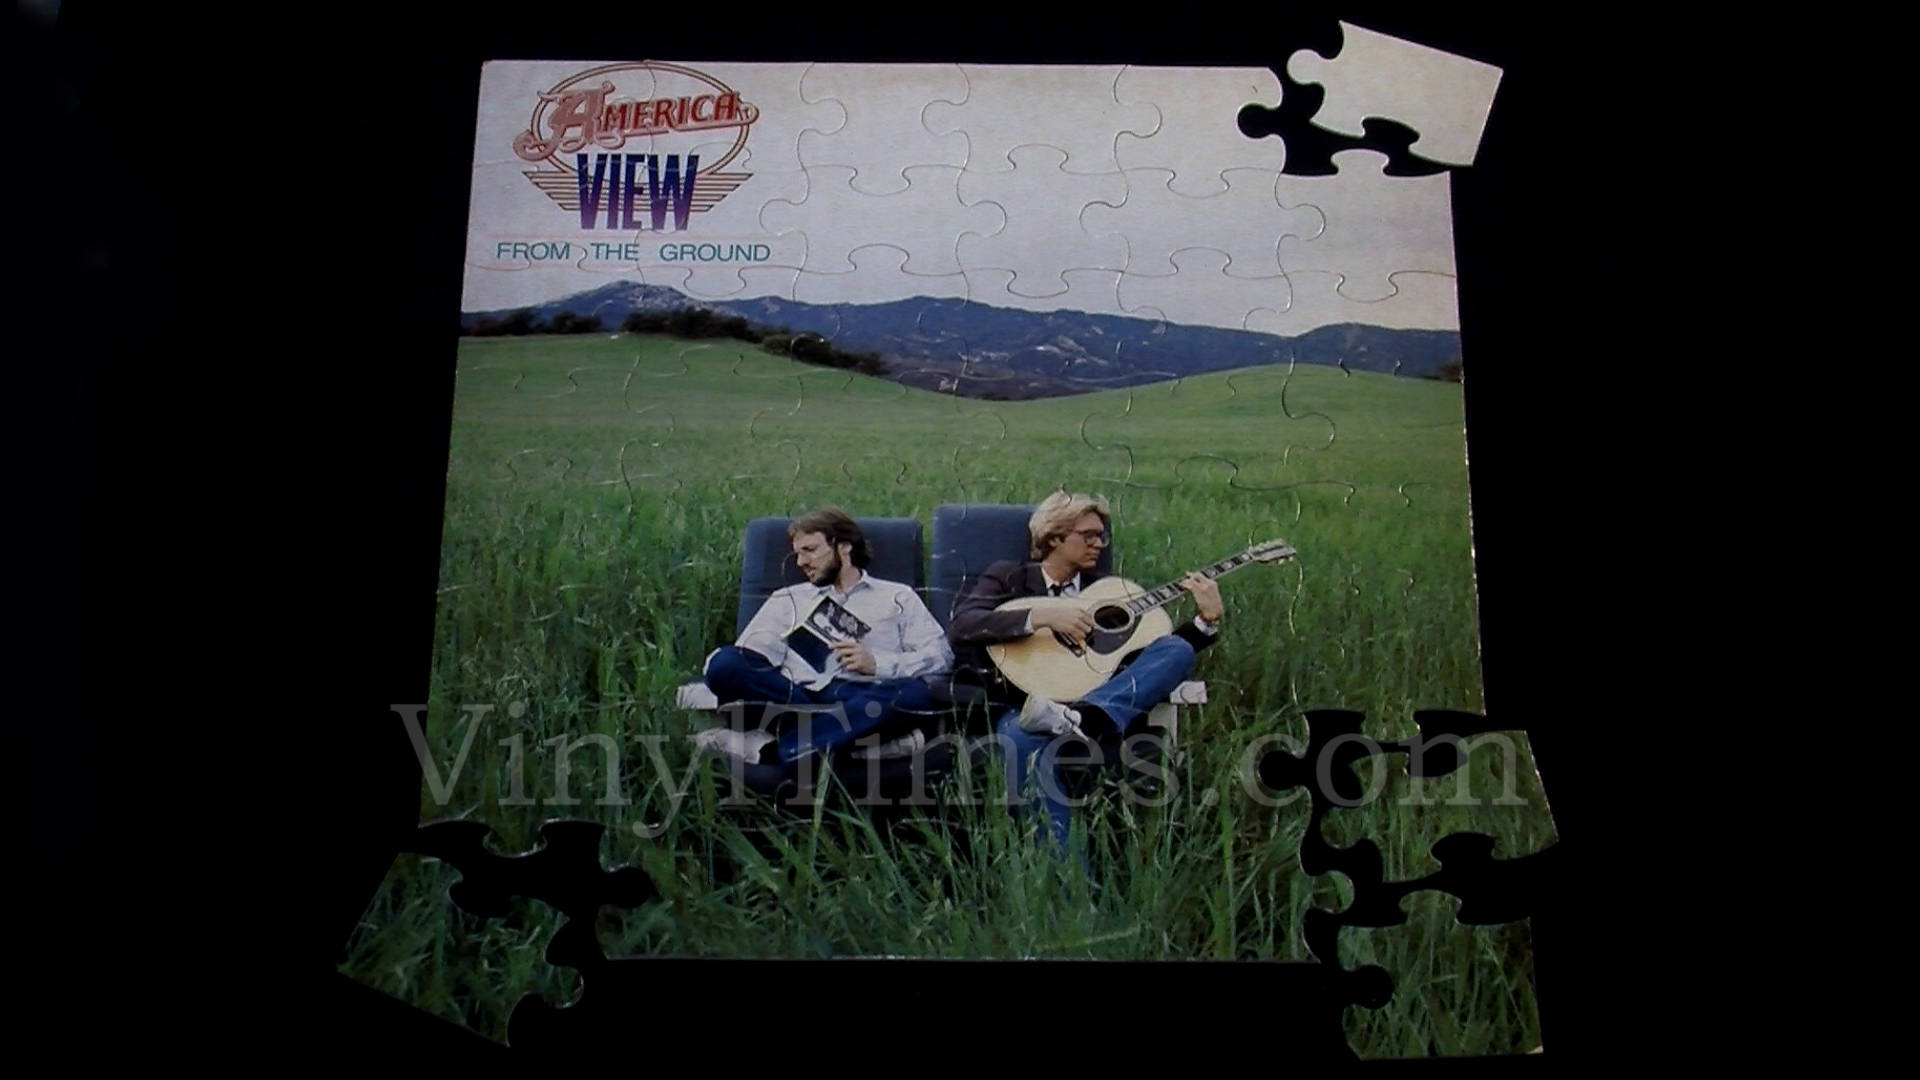 America Quot View From The Ground Quot Album Cover Jigsaw Puzzle